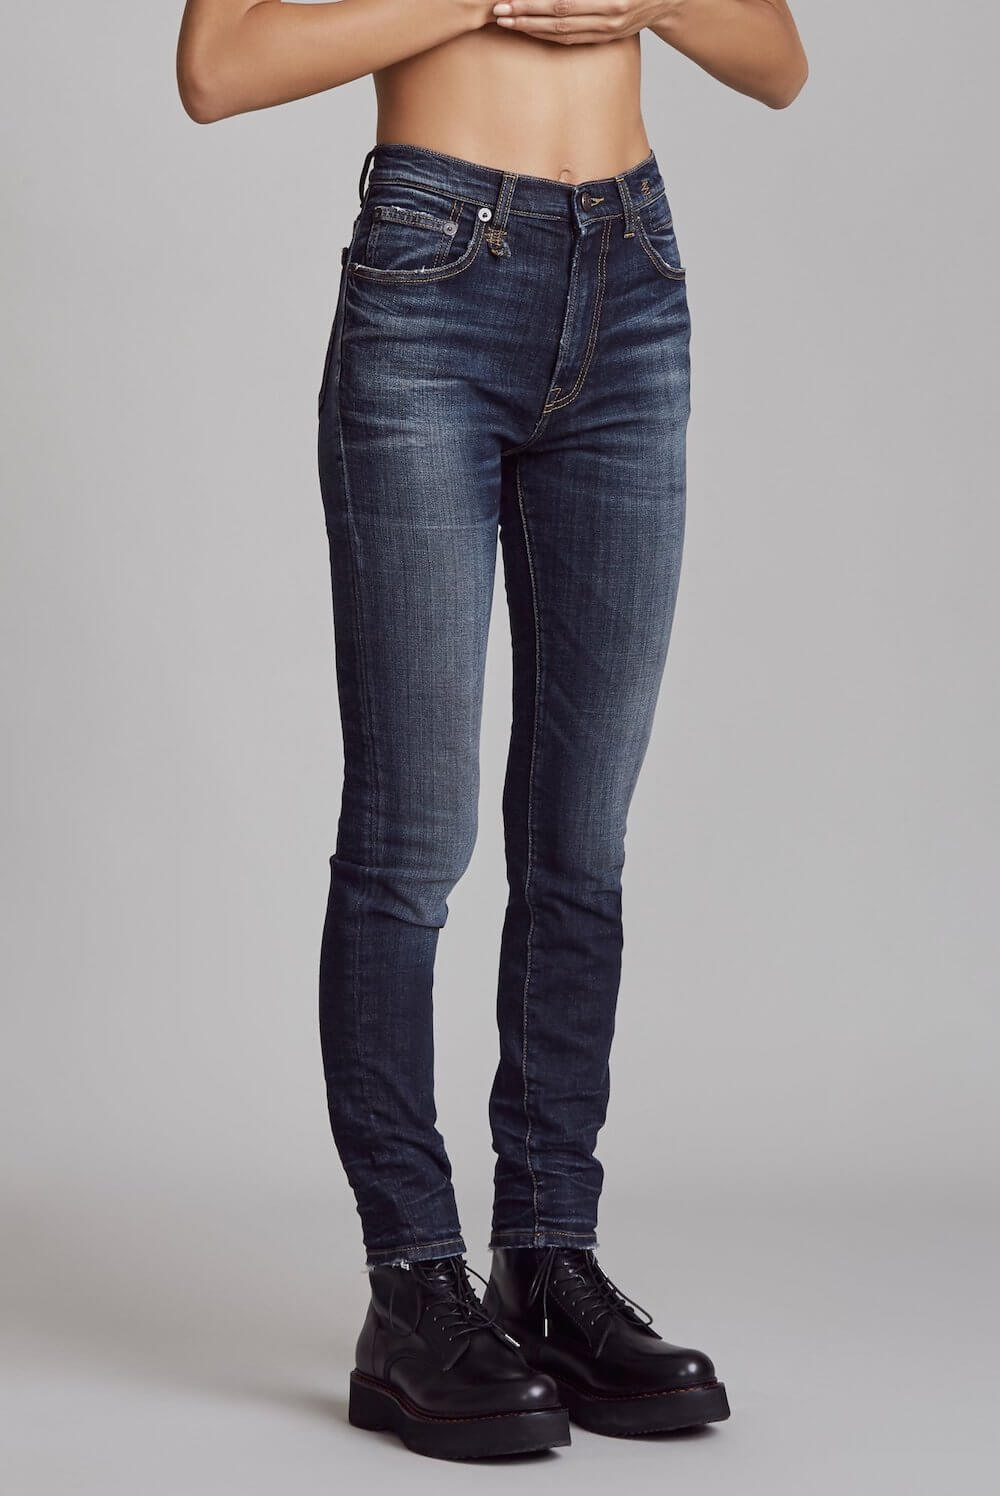 r13 high rise howell jean